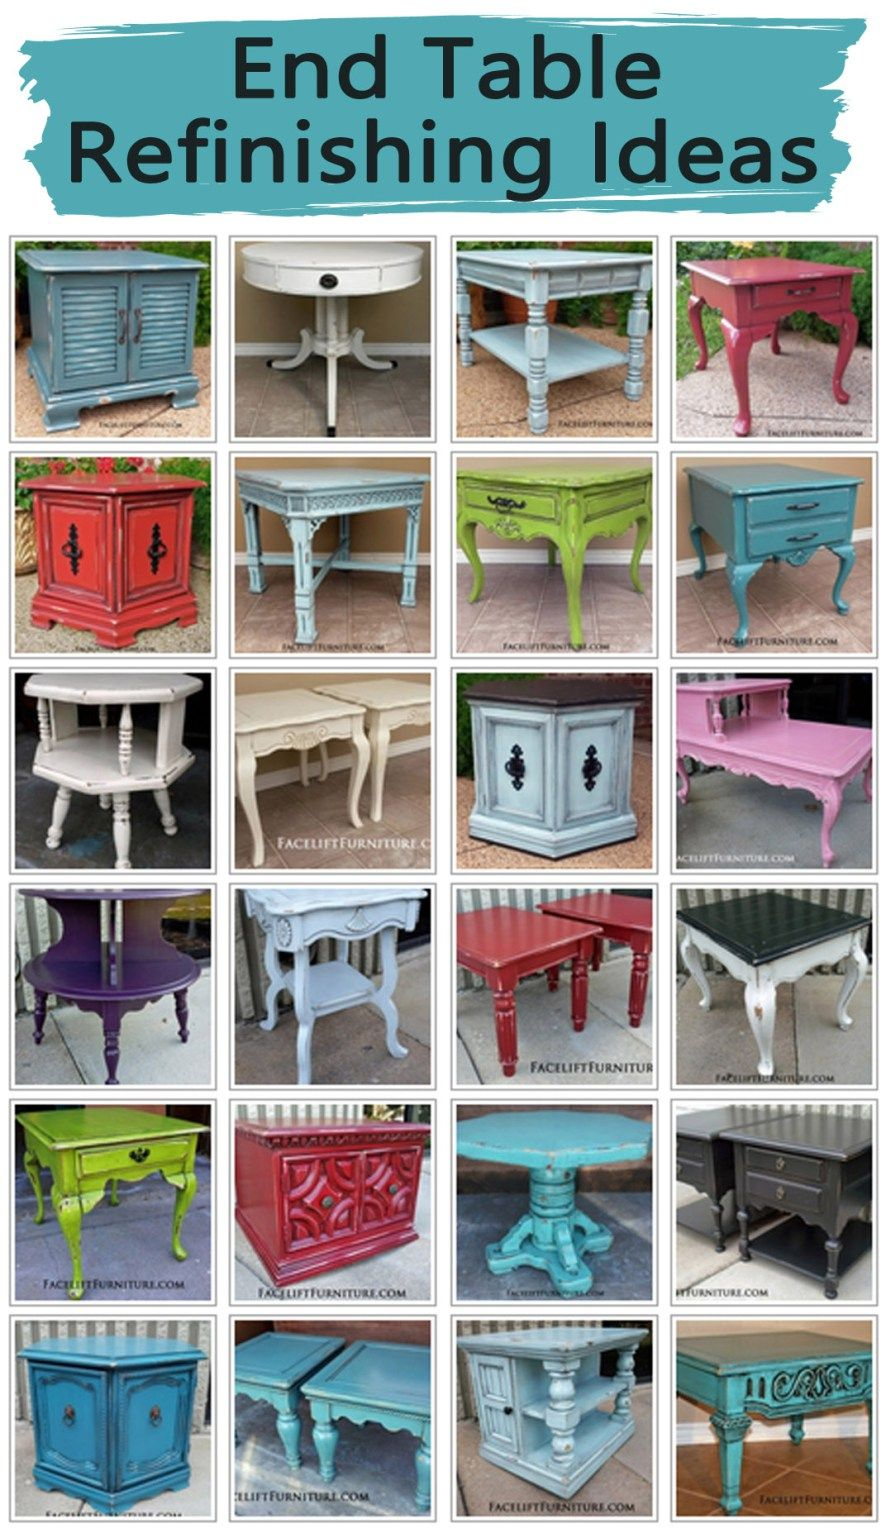 end table refinishing ideas furniture distressed diy refinish tables are great way introduce the upstyled look painted glazed and into your home learn more from facelift real wood